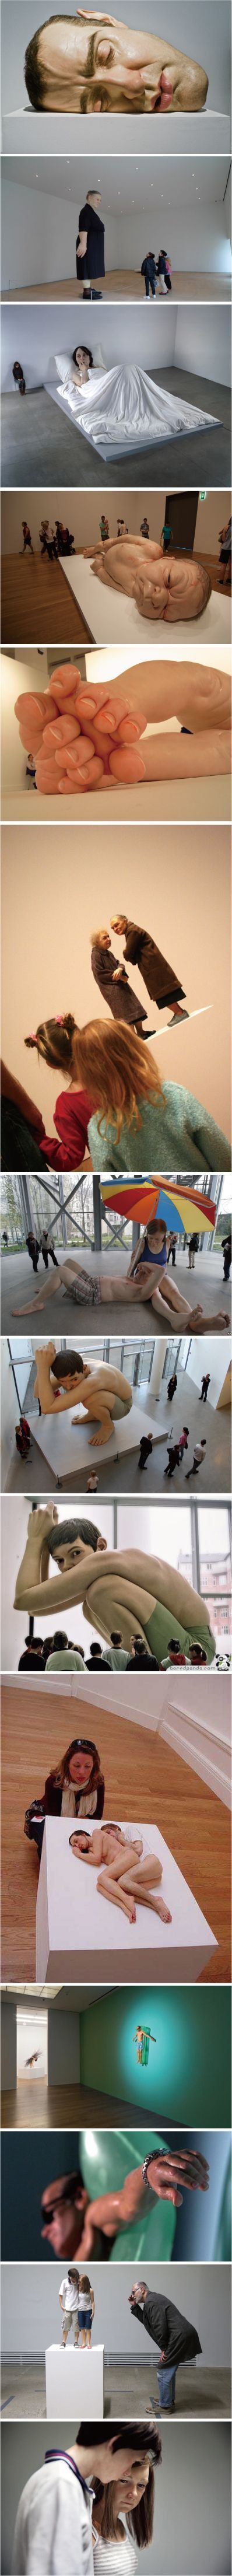 I Like Art / Ron Mueck https://sellfy.com/dardoor